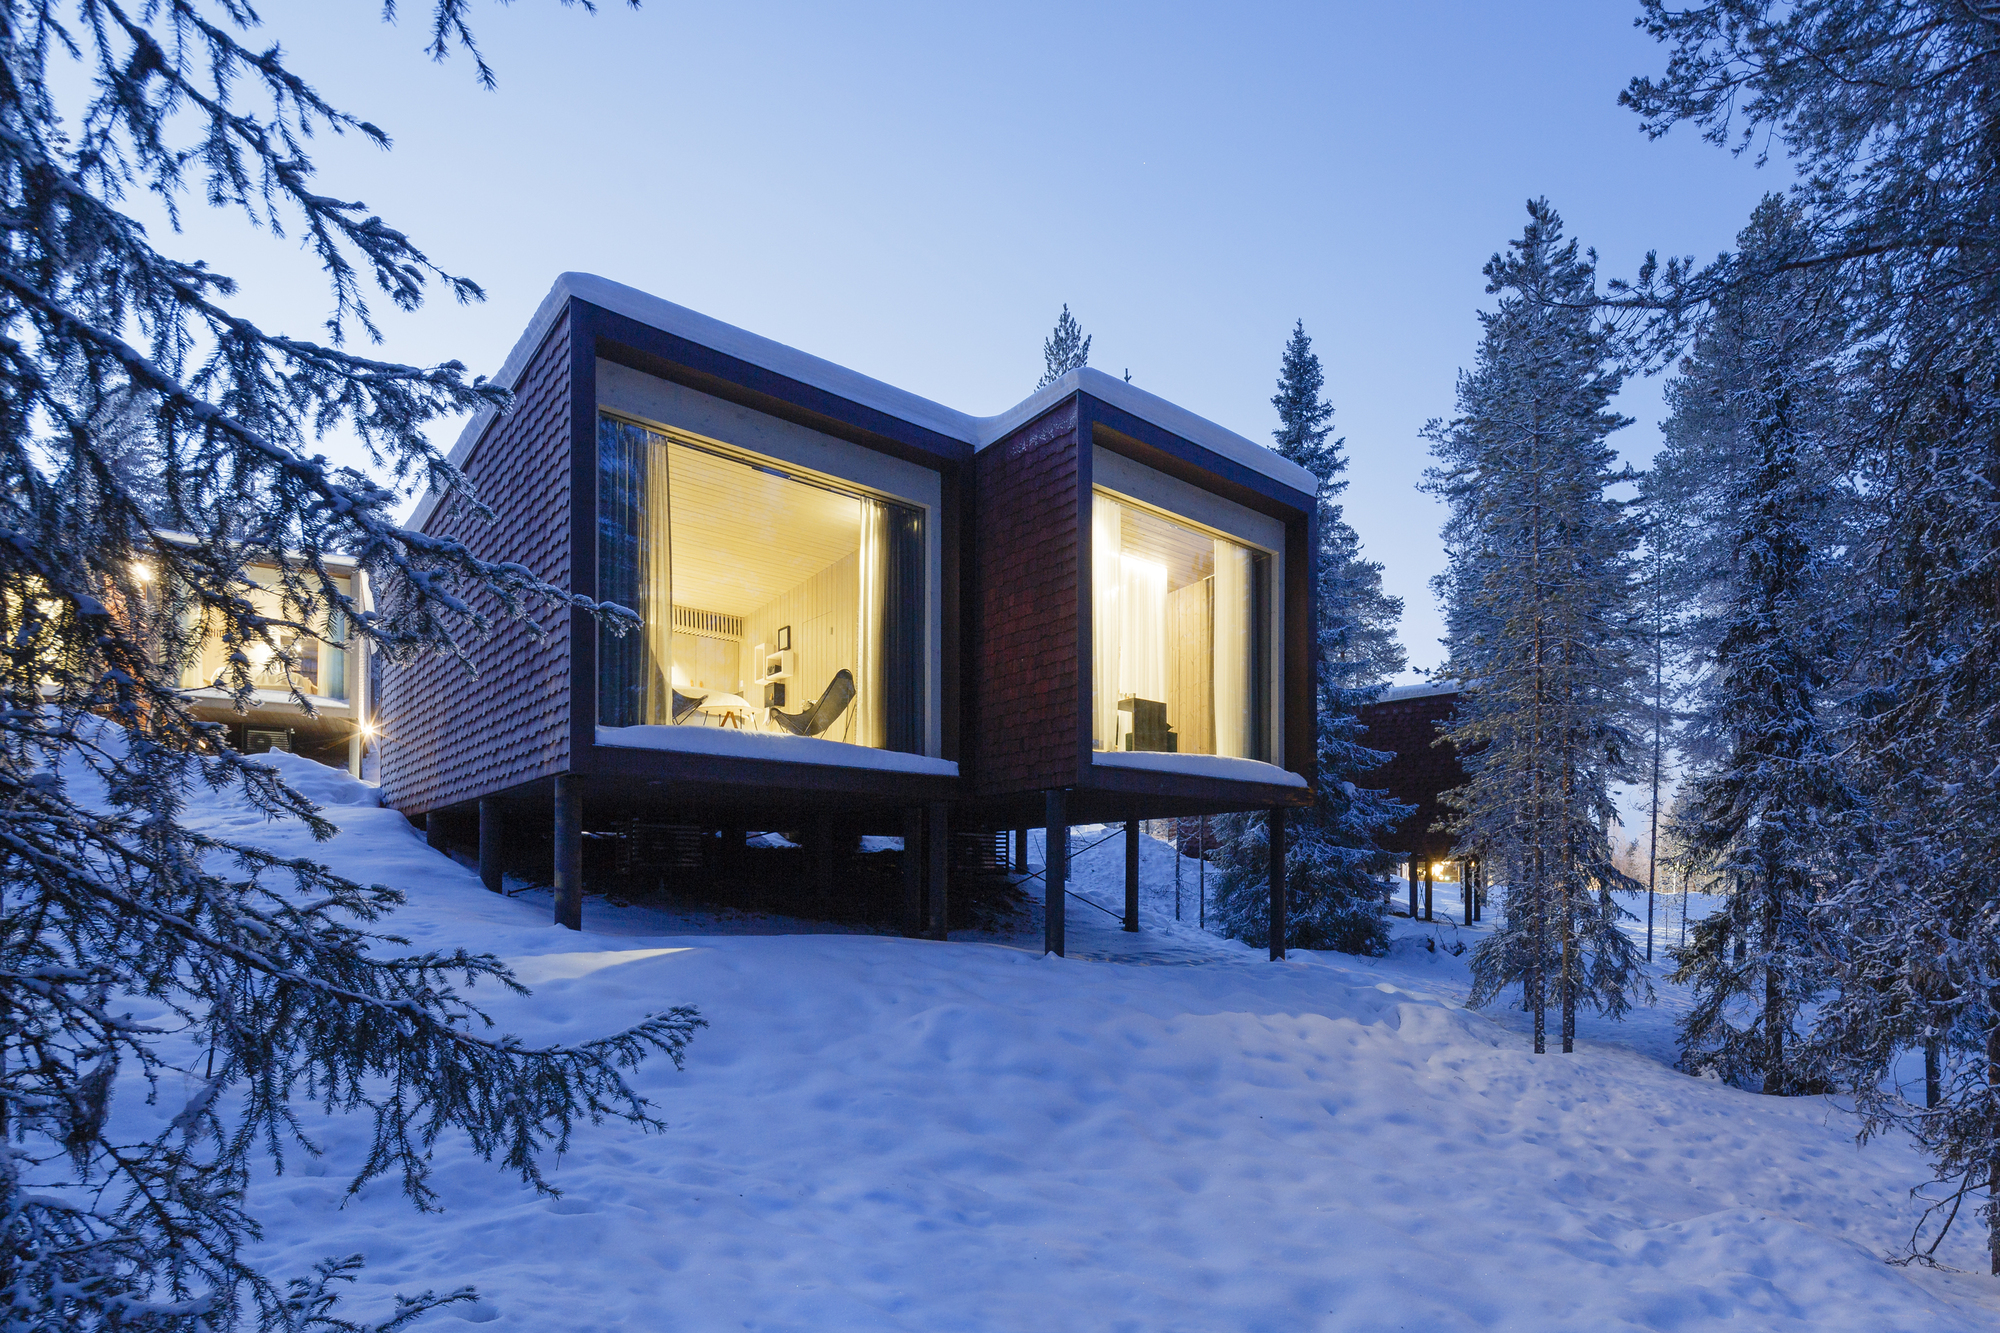 Arctic Treehouse Hotel Studio Puisto Archdaily